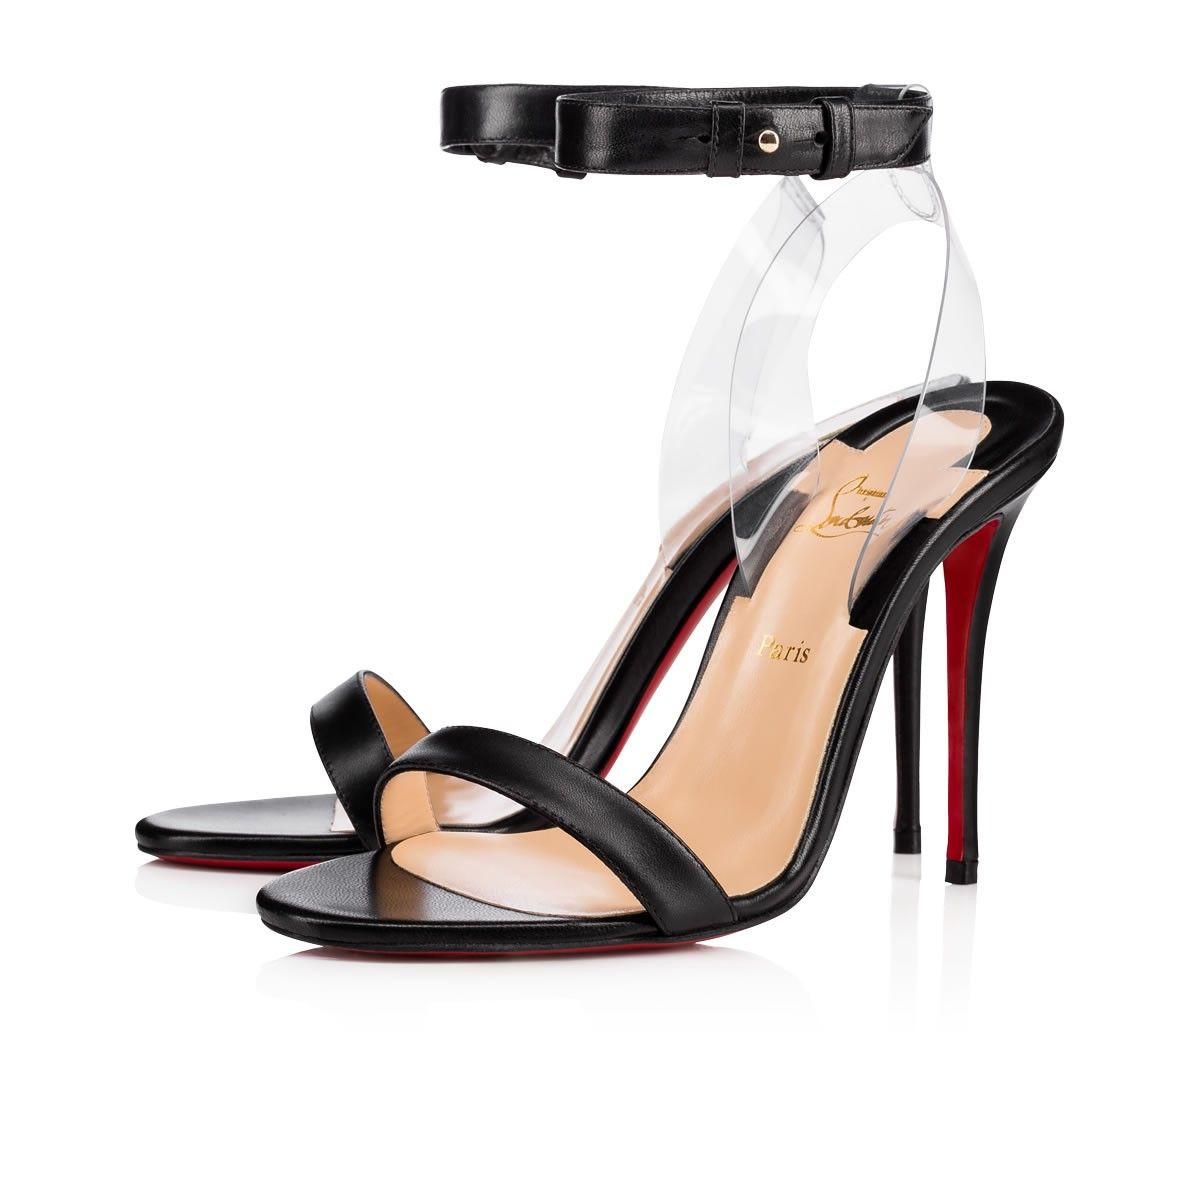 Jonatina Embodies Minimalist Elegance A Transparent Pvc Heel Feature Creates The Illusion Of A Det Christian Louboutin Black Sandals Heels Minimalist Shoes